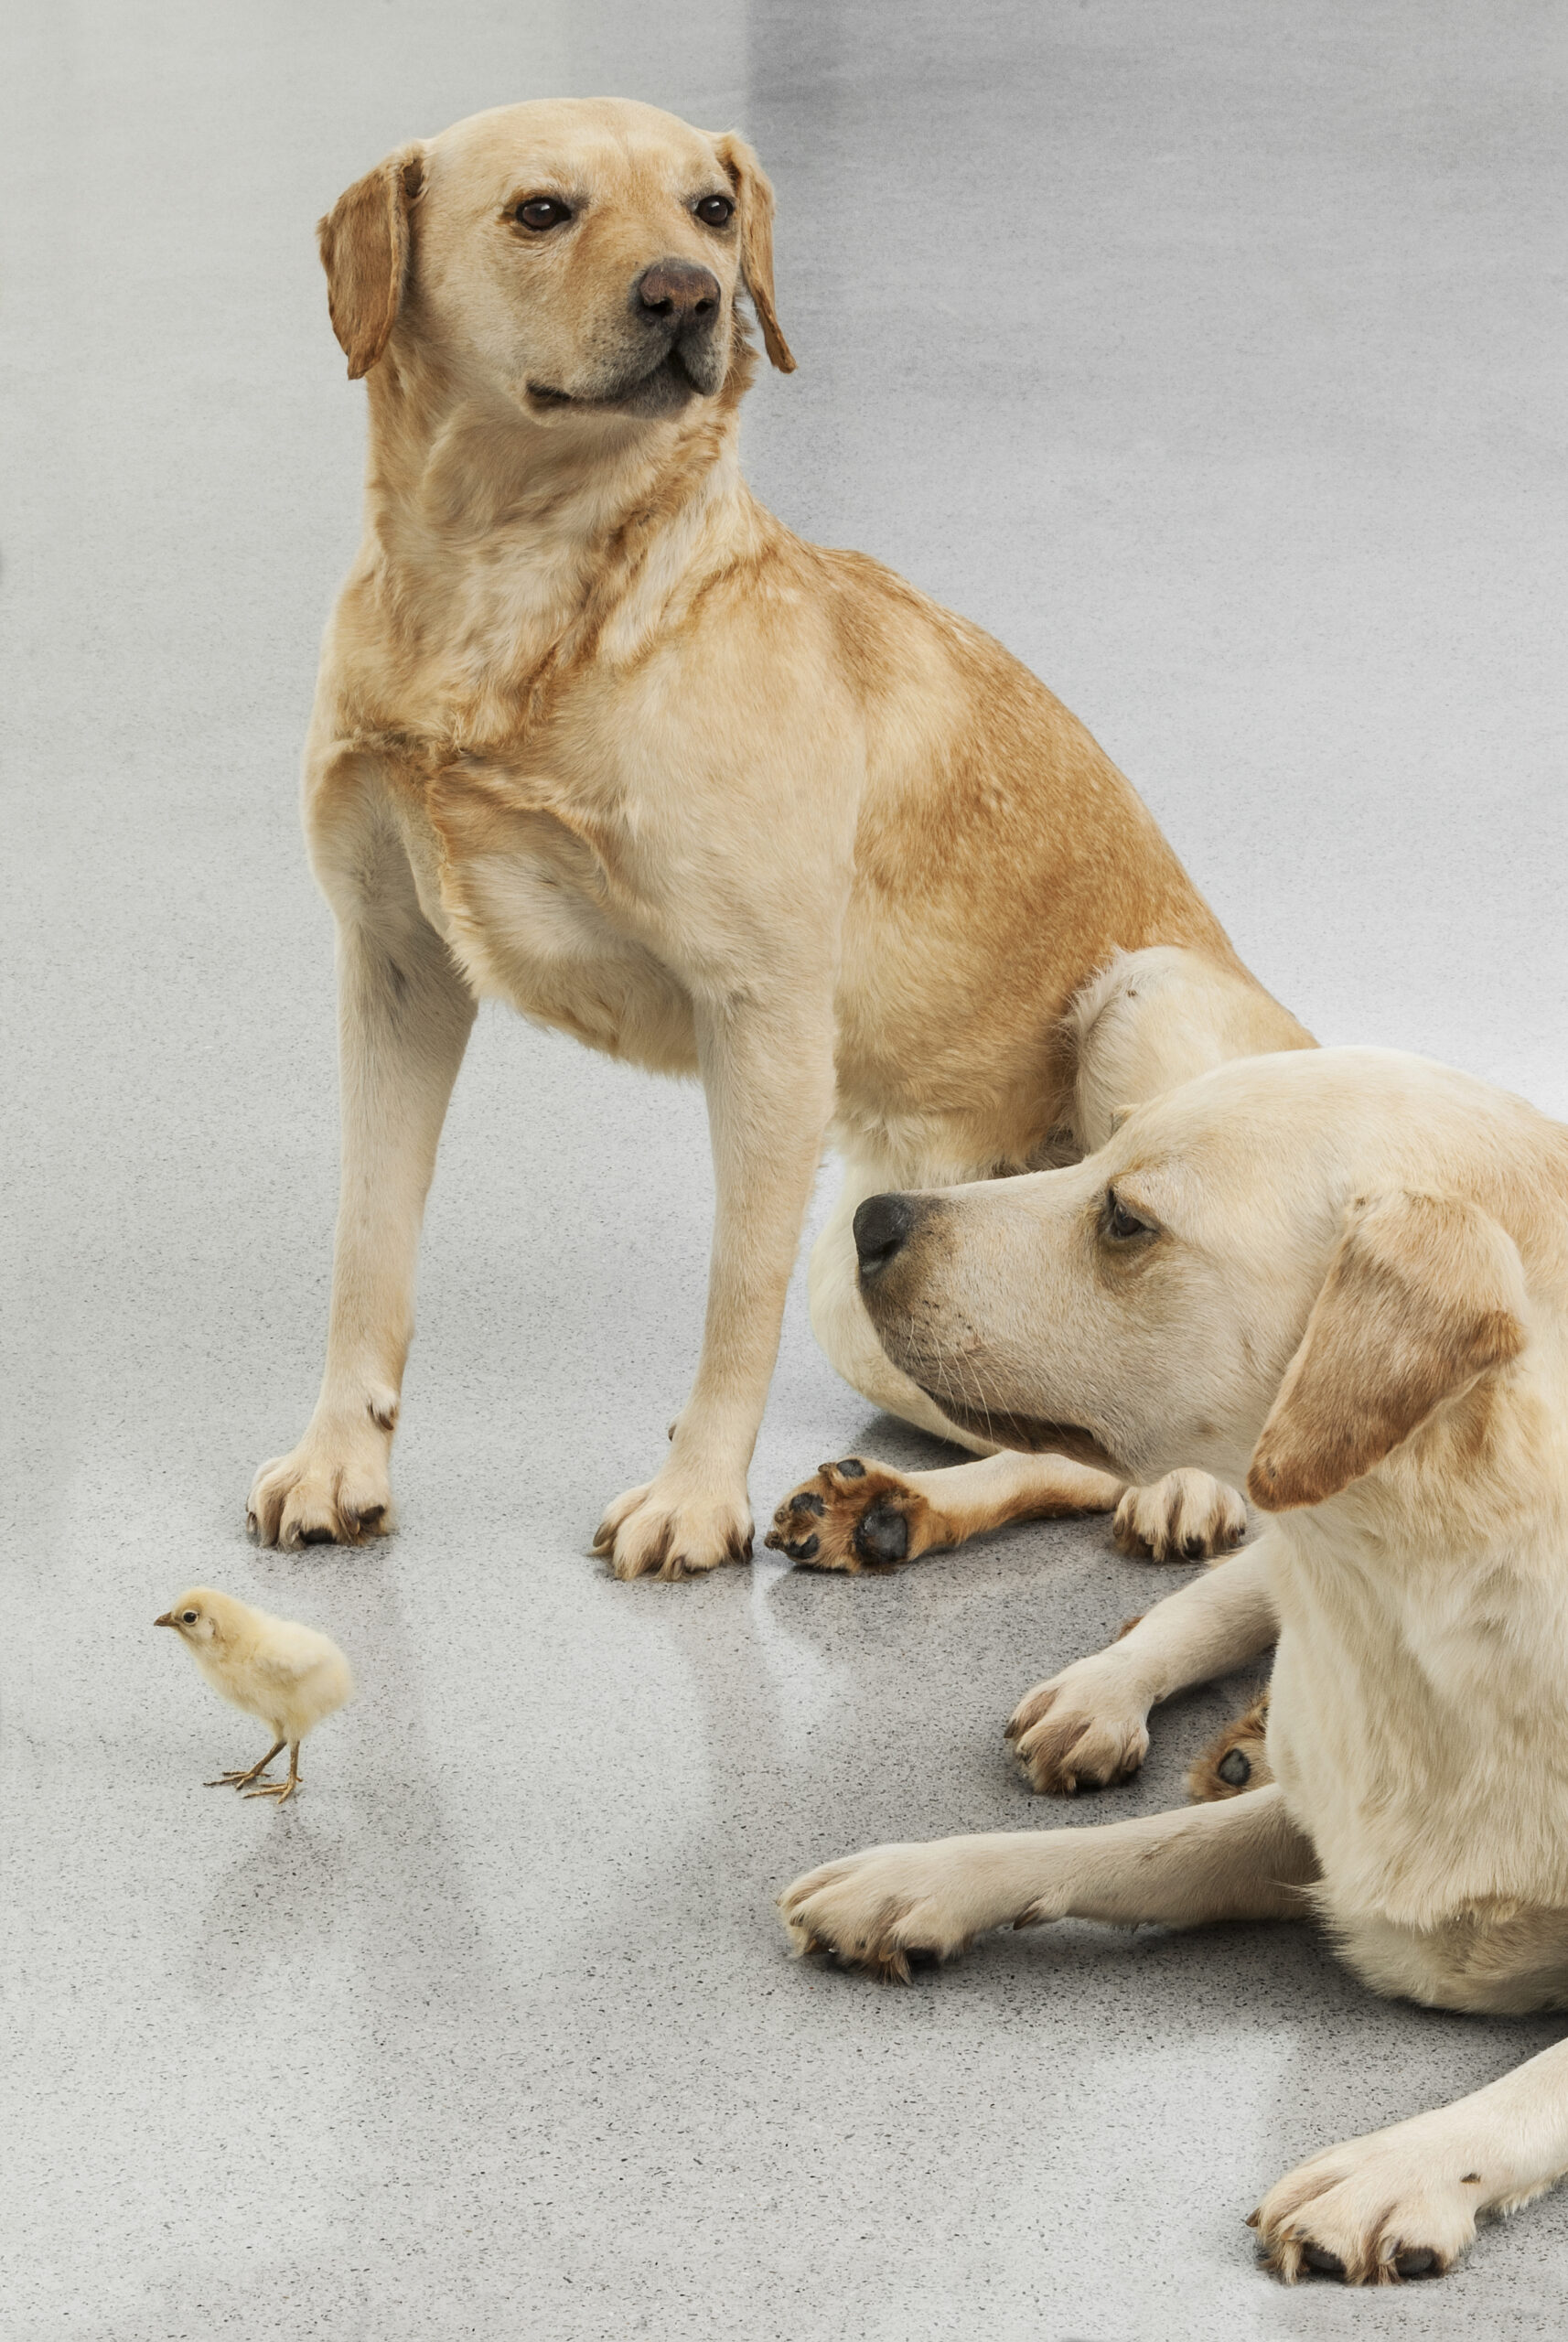 Maurizio Cattelan, Untitled, 2007 (detail) , Taxidermied labrador dogs, chick  Variable dimensions, Installation view, Kunsthaus Bregenz, 2008  Courtesy Maurizio Cattelan's Archive  Photo Zeno Zotti